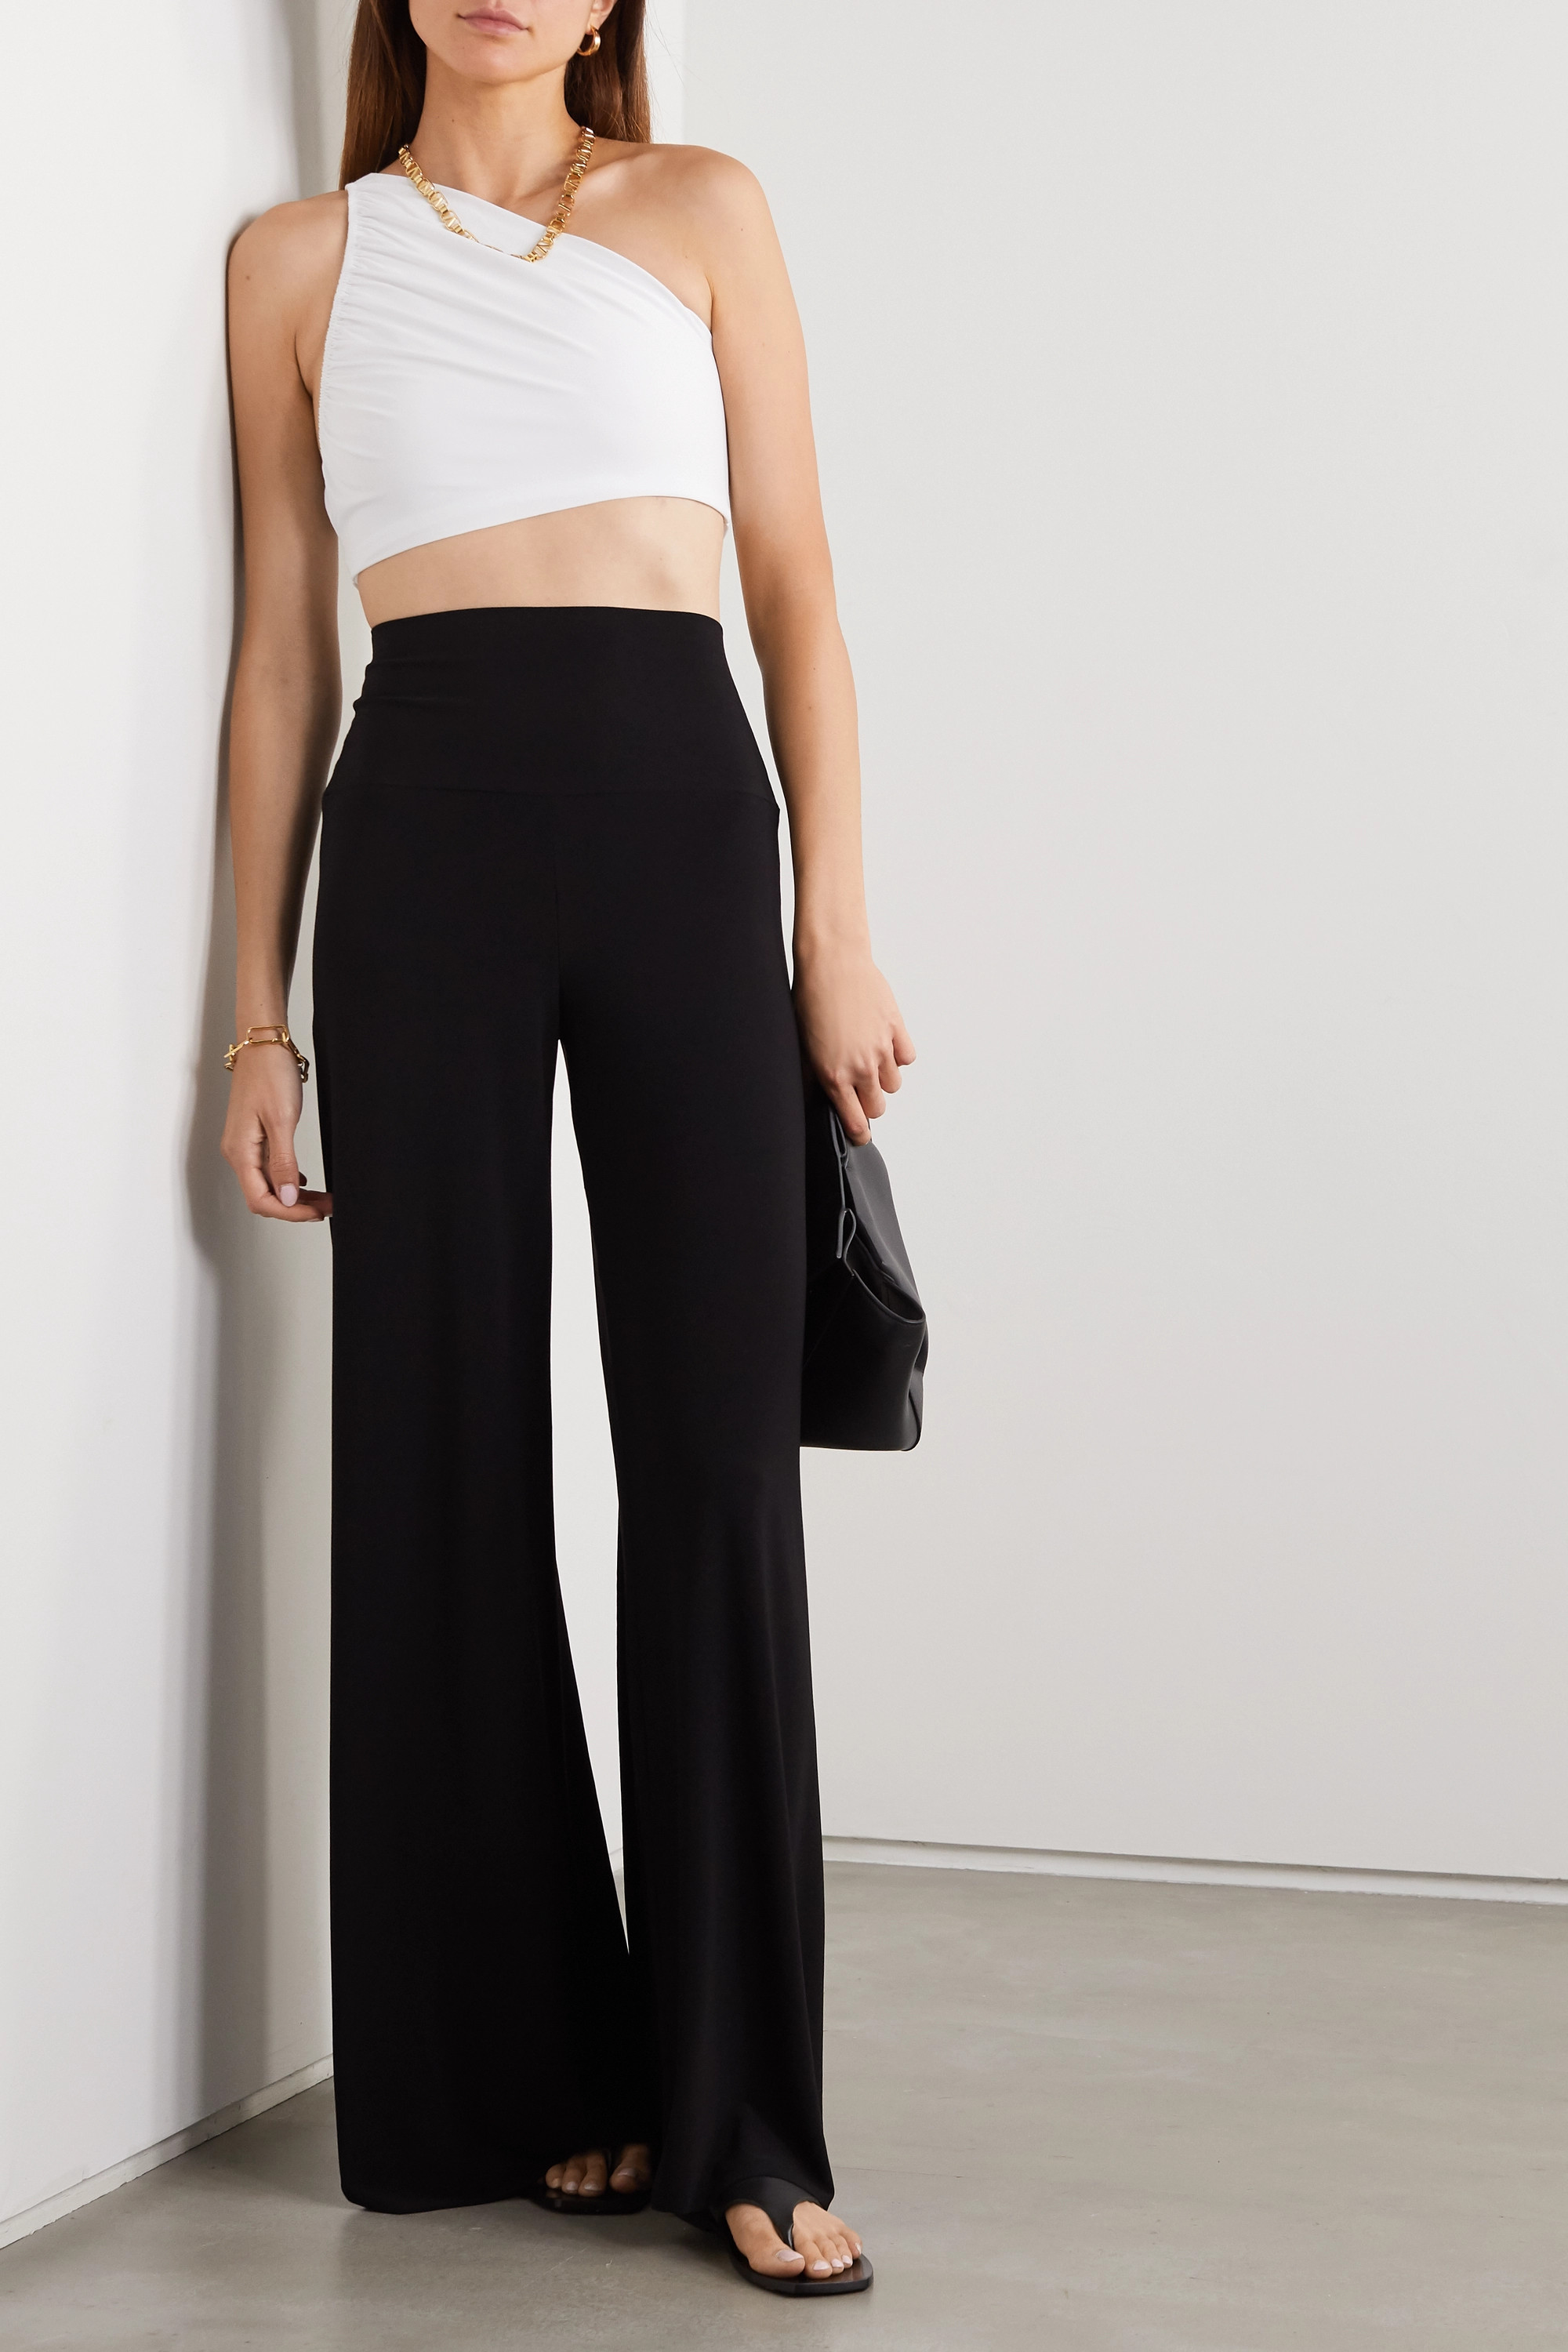 Norma Kamali Diana cropped one-shoulder stretch-jersey top